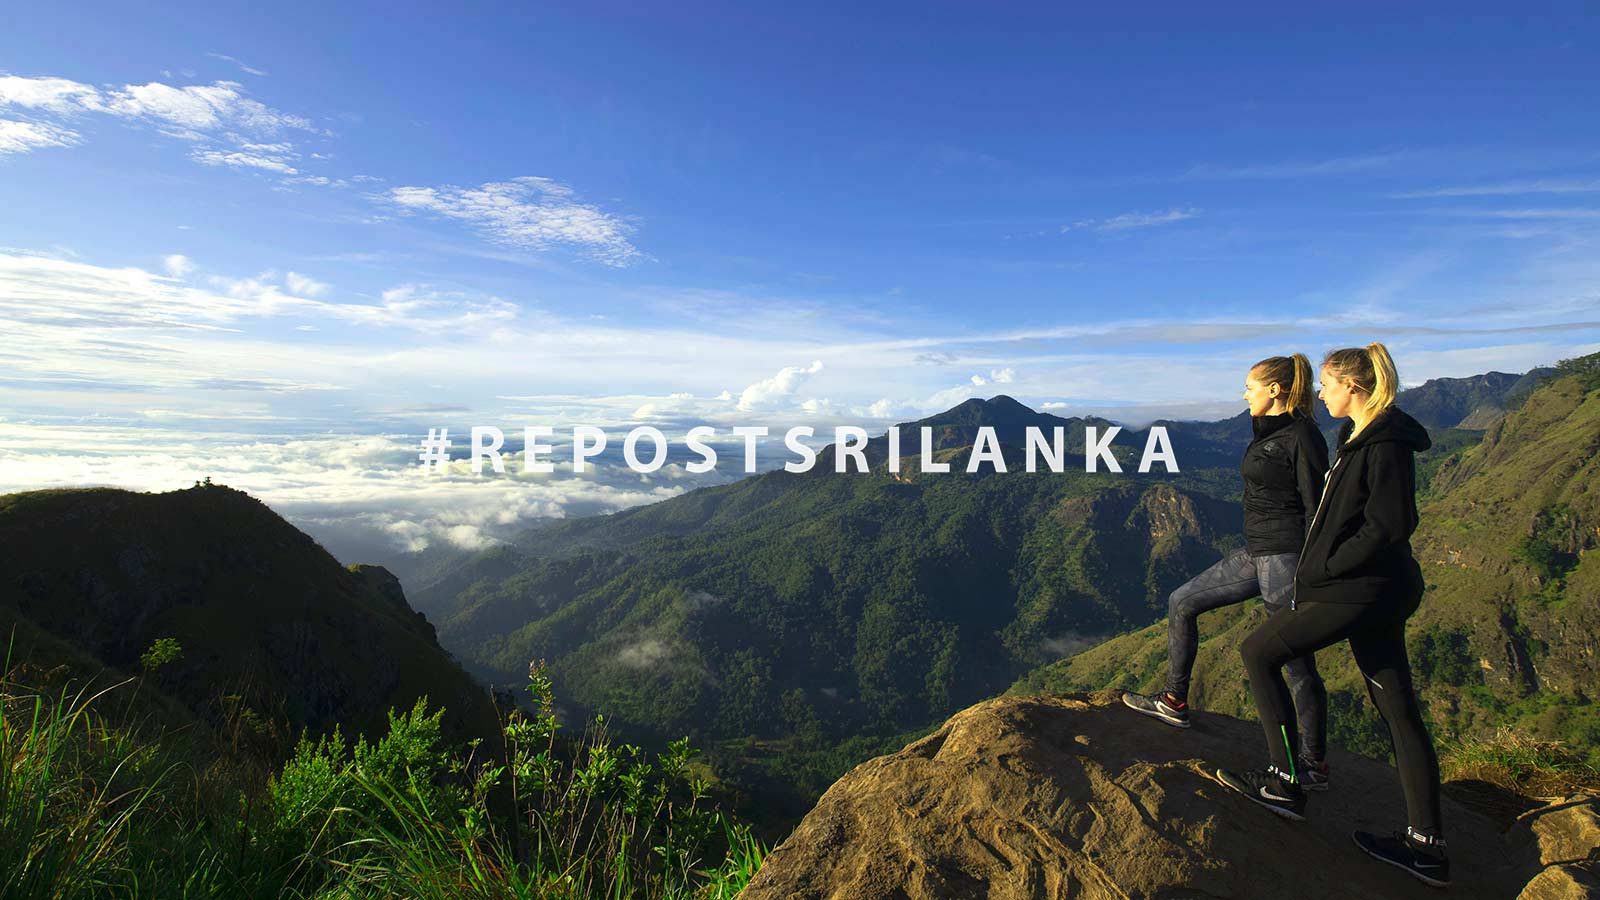 2 women hiking in Sri Lanka